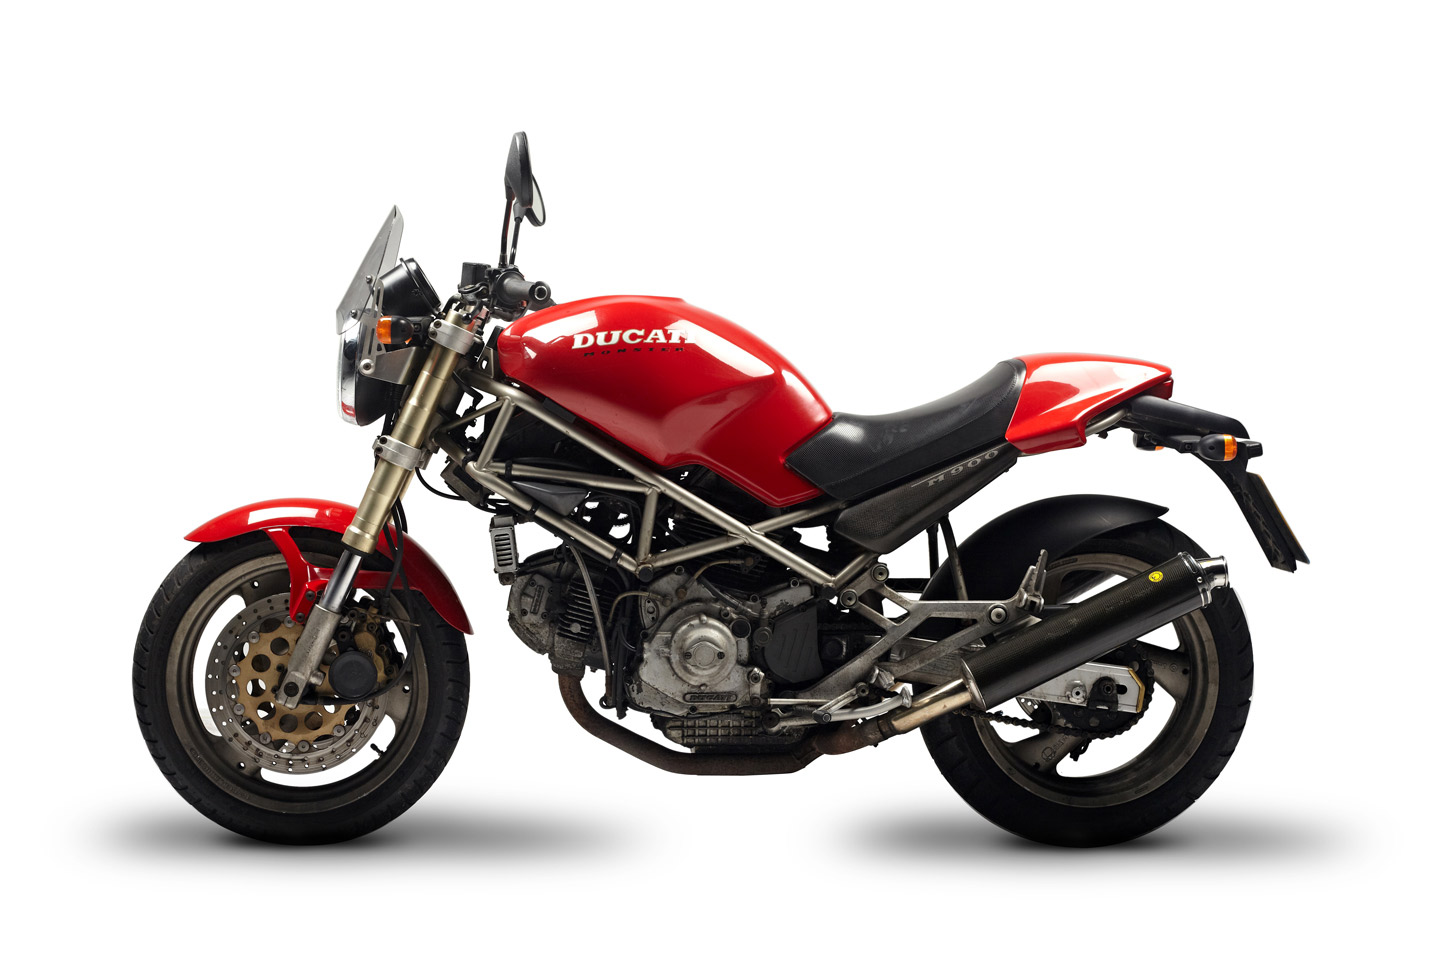 ducati ducati monster 900 moto zombdrive com. Black Bedroom Furniture Sets. Home Design Ideas